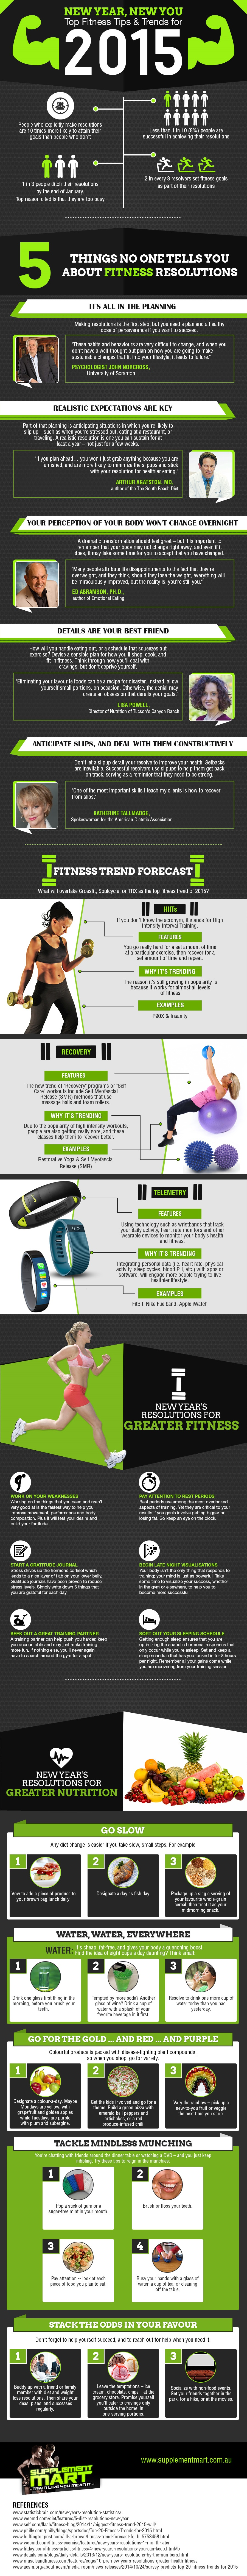 New Year, New You - Top Fitness Tips & Trends for 2015